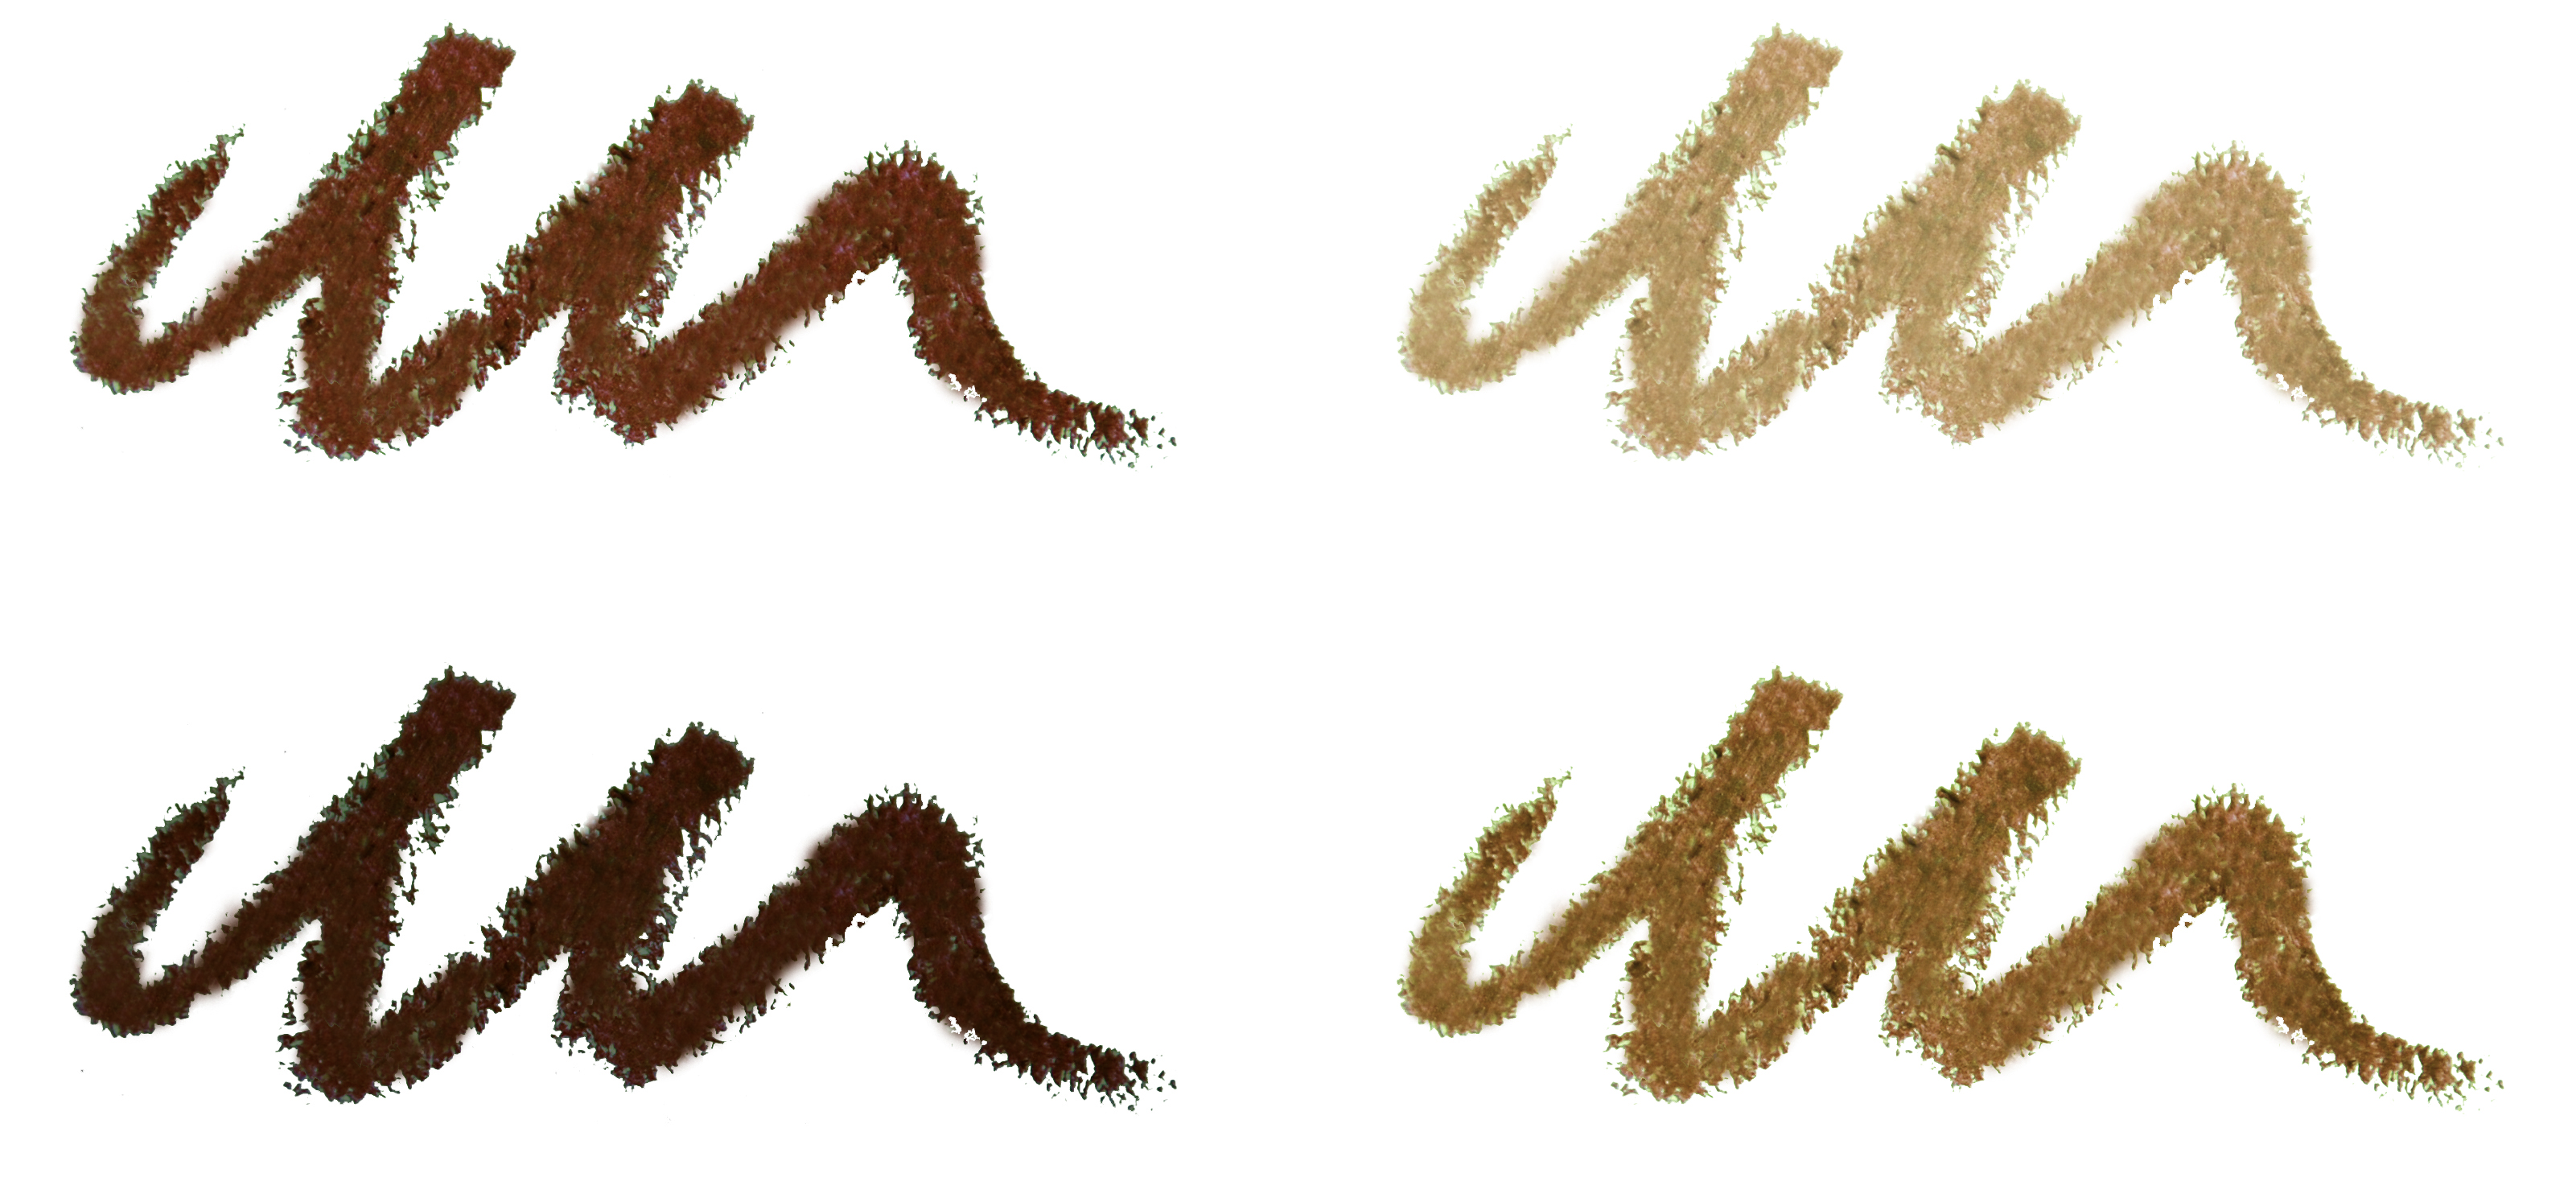 Precision Brow Pencil swatches